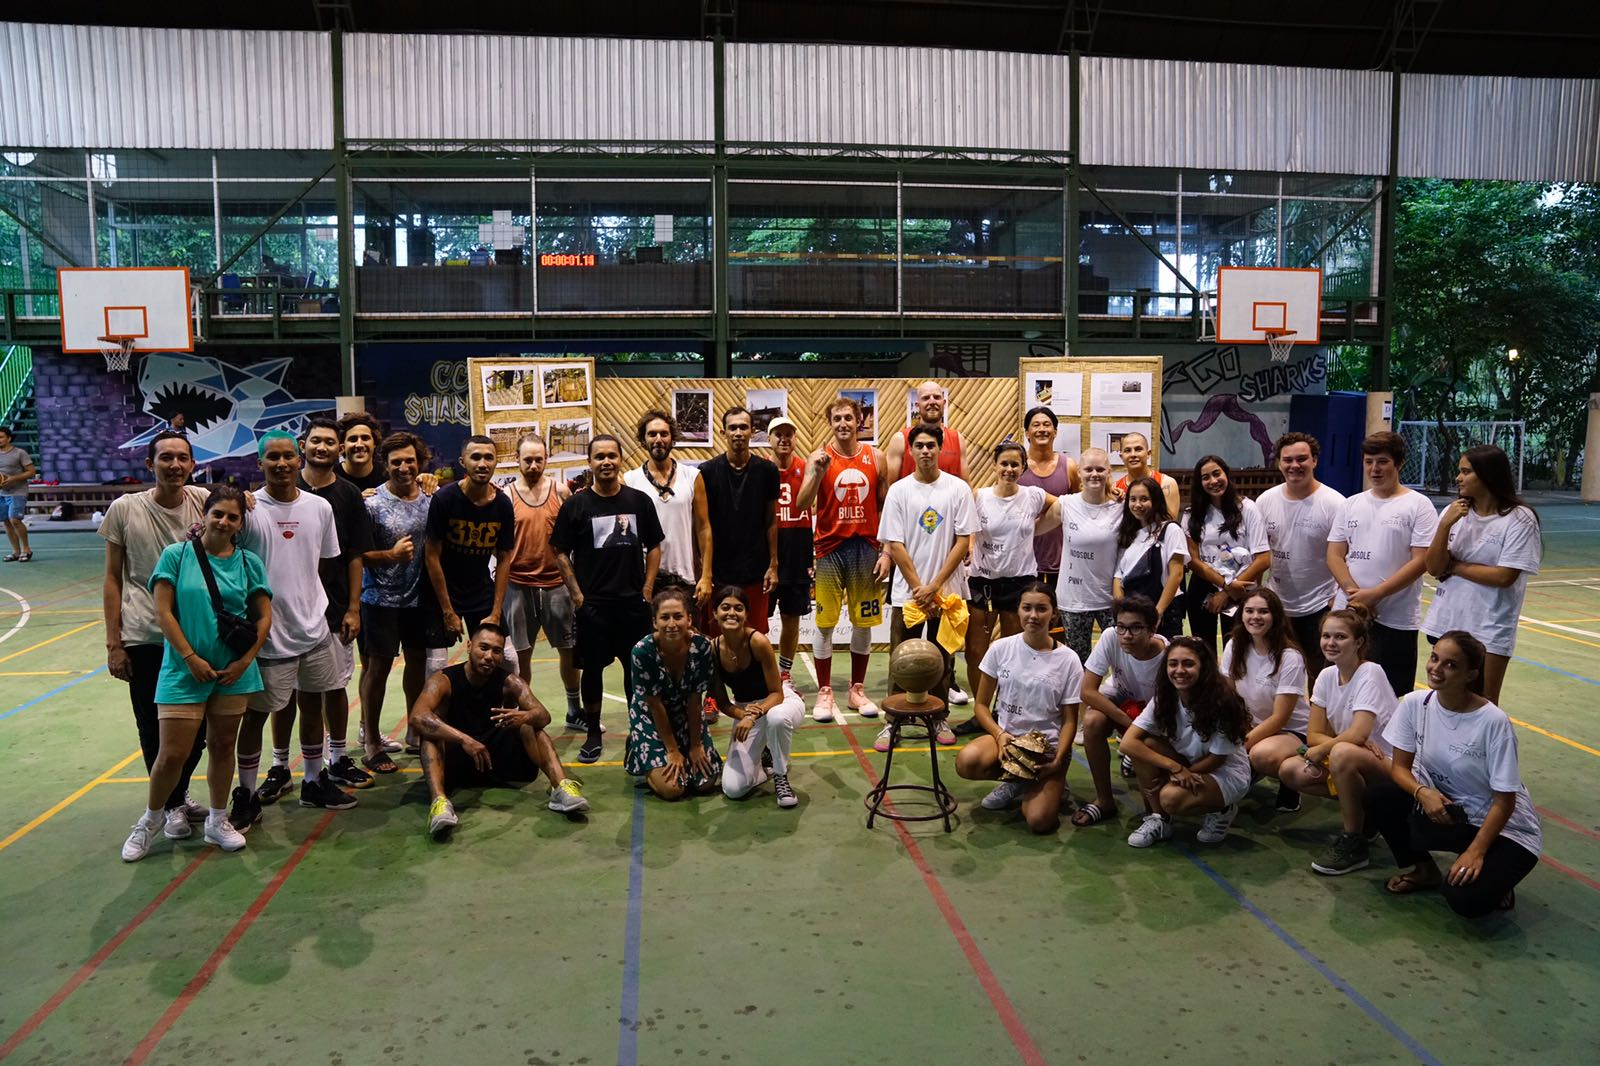 CCS x Indosole x PNNY Community Assist 3 on 3 Basketball Tournament at Canggu Community School